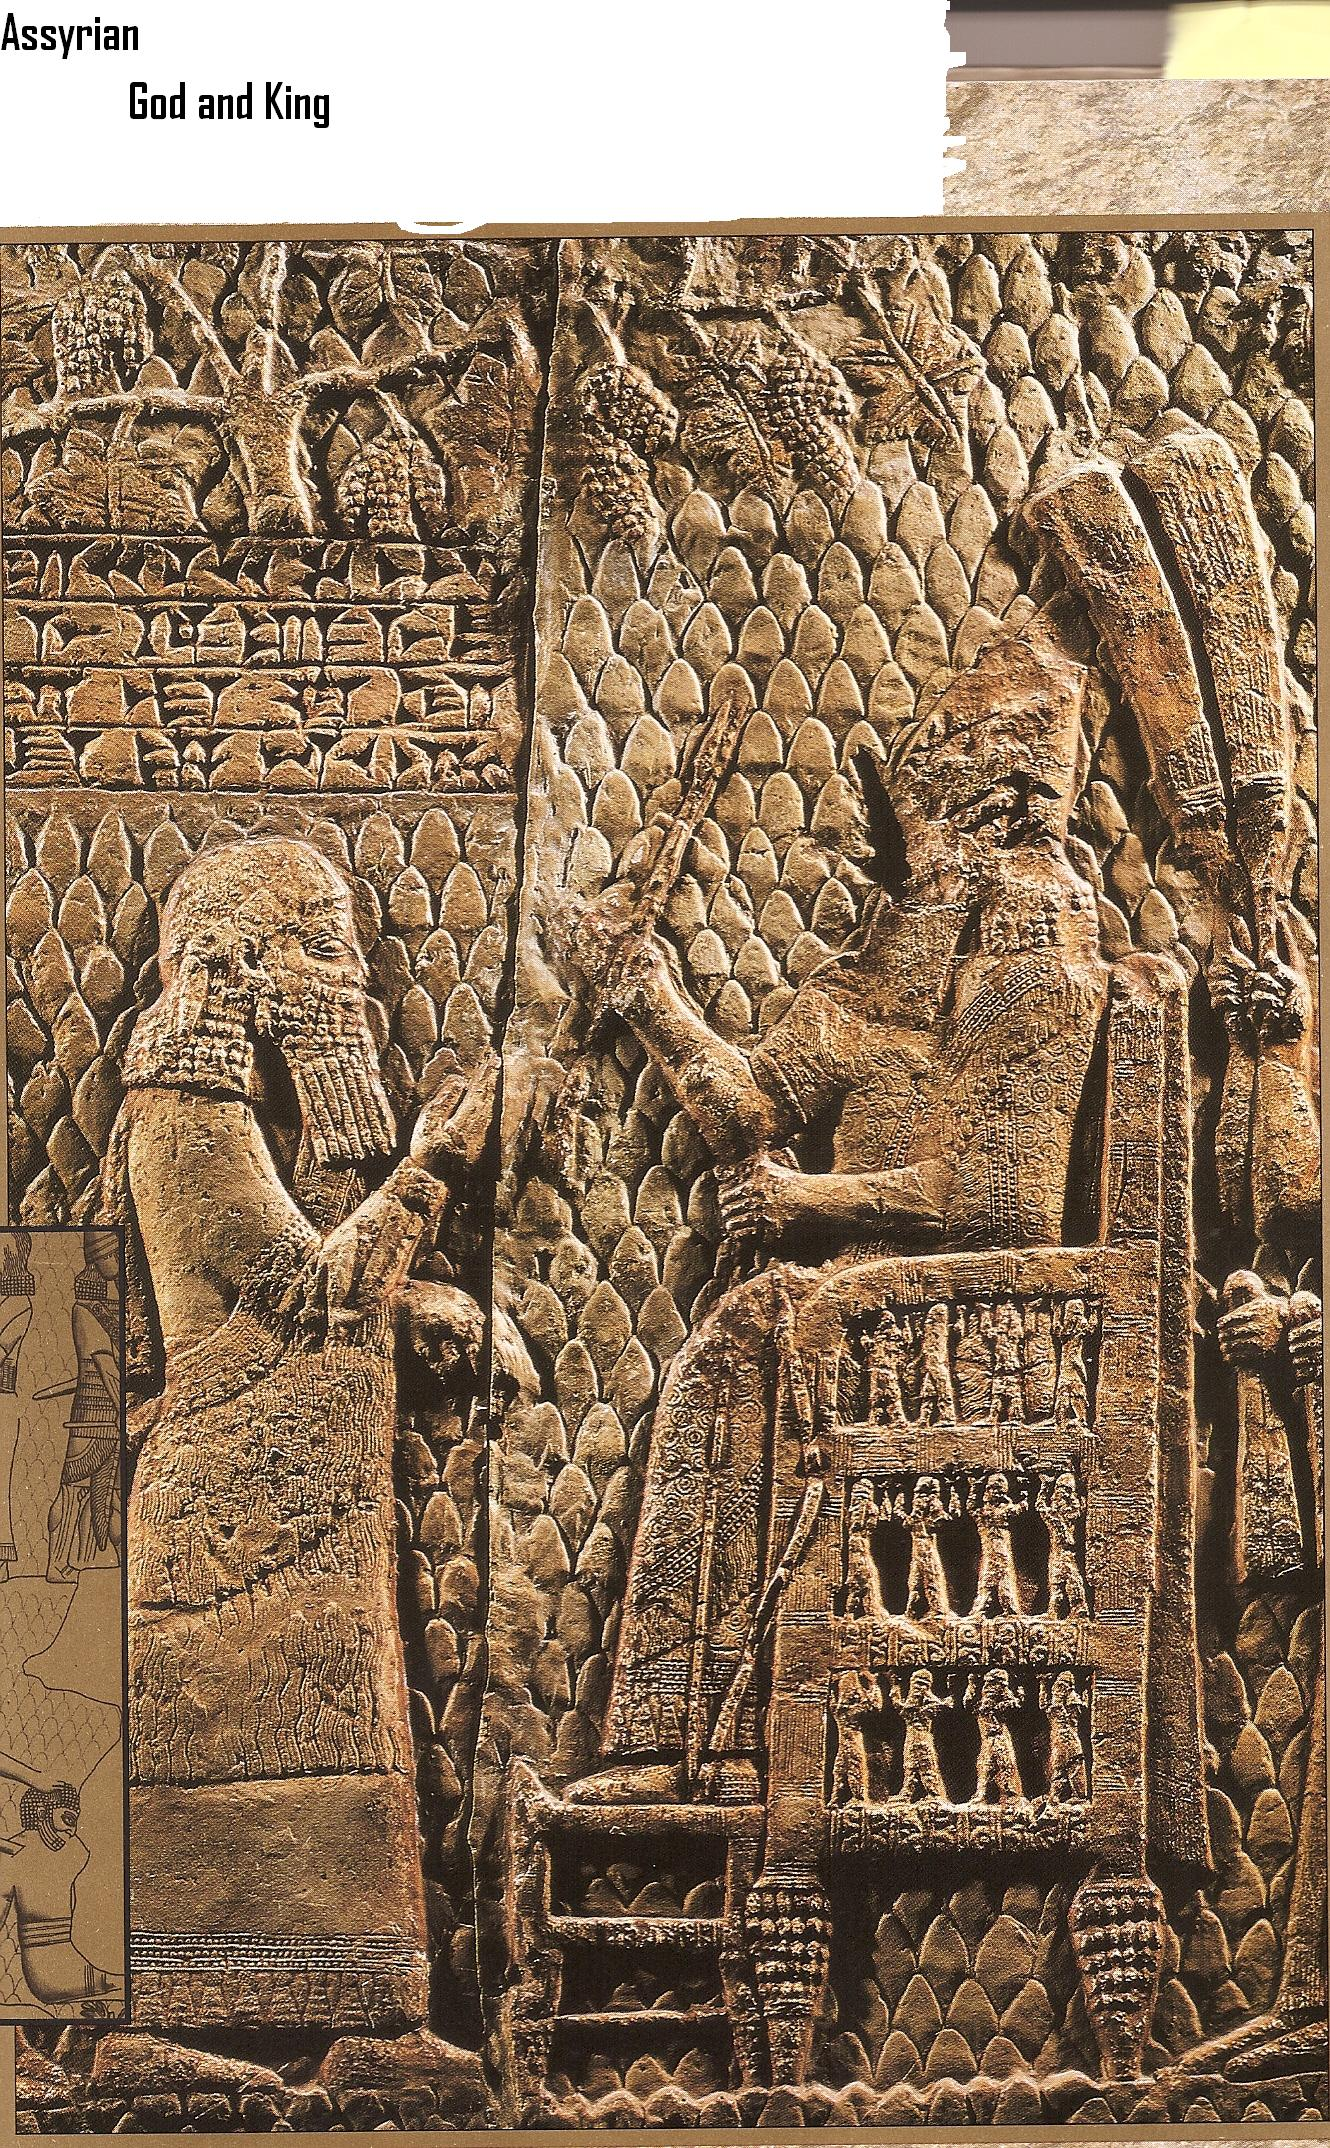 4a - Assyrian artefact of giant alien god Ashur seated, with an unidentified giant mixed-breed king standing before him, waiting for Ashur's instructions, ancient artefacts tell a clear story of earthling involvement with giant aliens, who gave laws, religion, agriculture, astronomy, education, medical science, & everything else to mankind, today the list would be electricity, silicon chips, night vision, space technology, kevlar, nuclear technology, & everything else mankind has come to learn from the gods